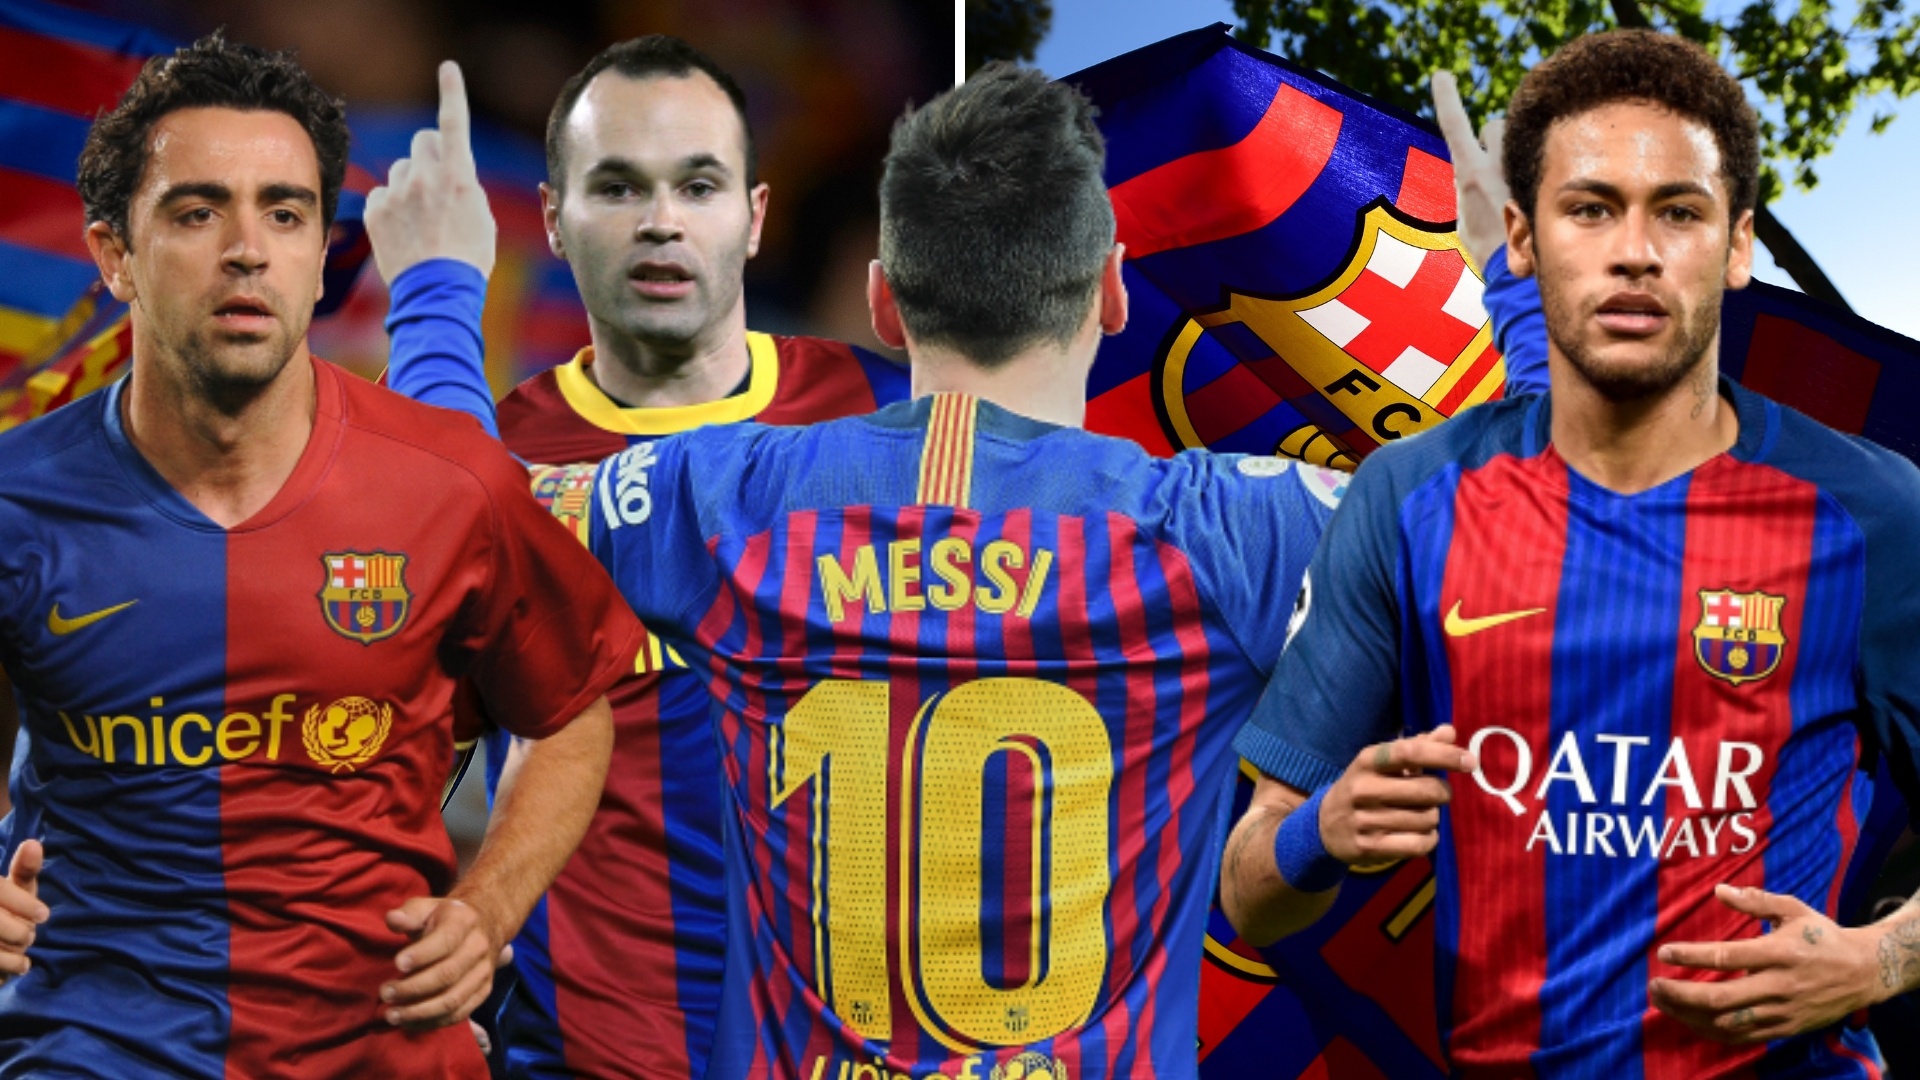 Messi S Goalscoring Stats Without Xavi Neymar And Iniesta Silences His Fiercest Critics Sportbible